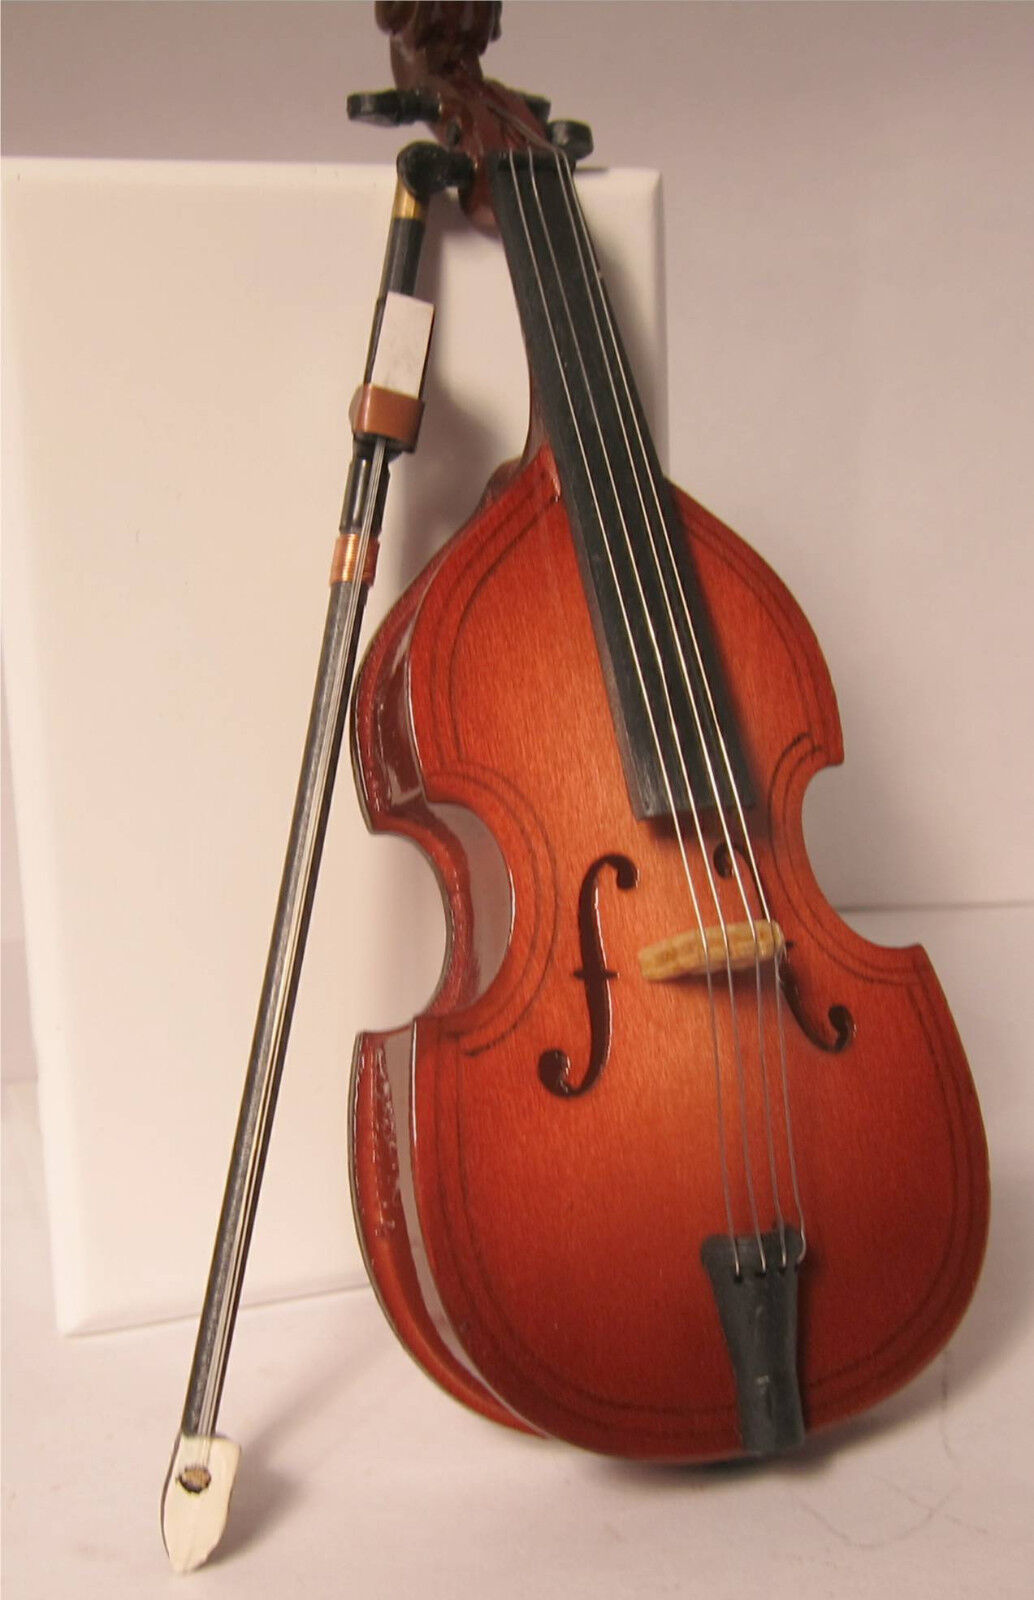 miniature musical instruments for sale classifieds. Black Bedroom Furniture Sets. Home Design Ideas